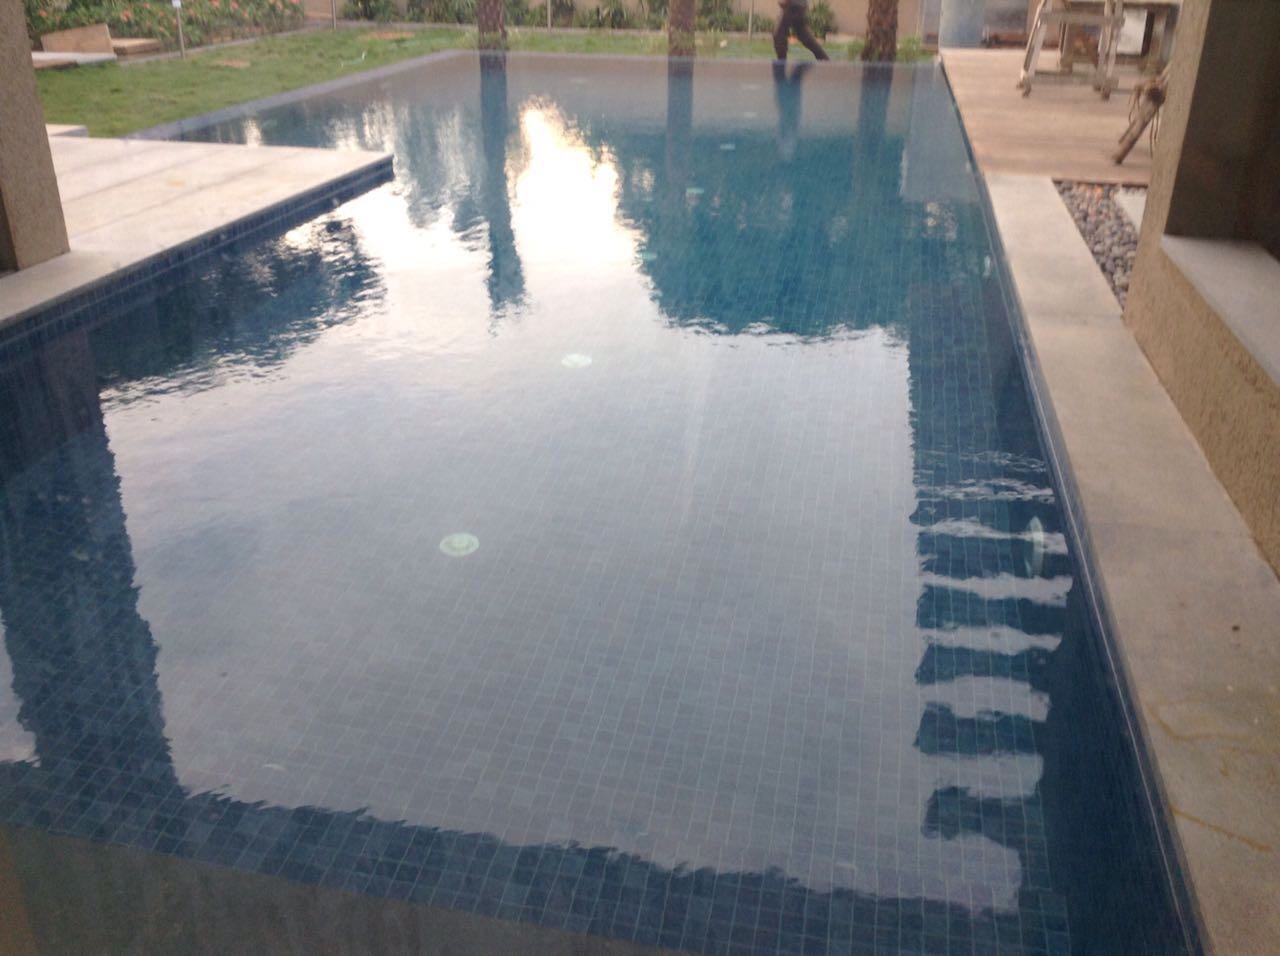 Bungalow with swimming pool for sale in ecr akkarai chennai deal a property for Swimming pool construction cost in chennai